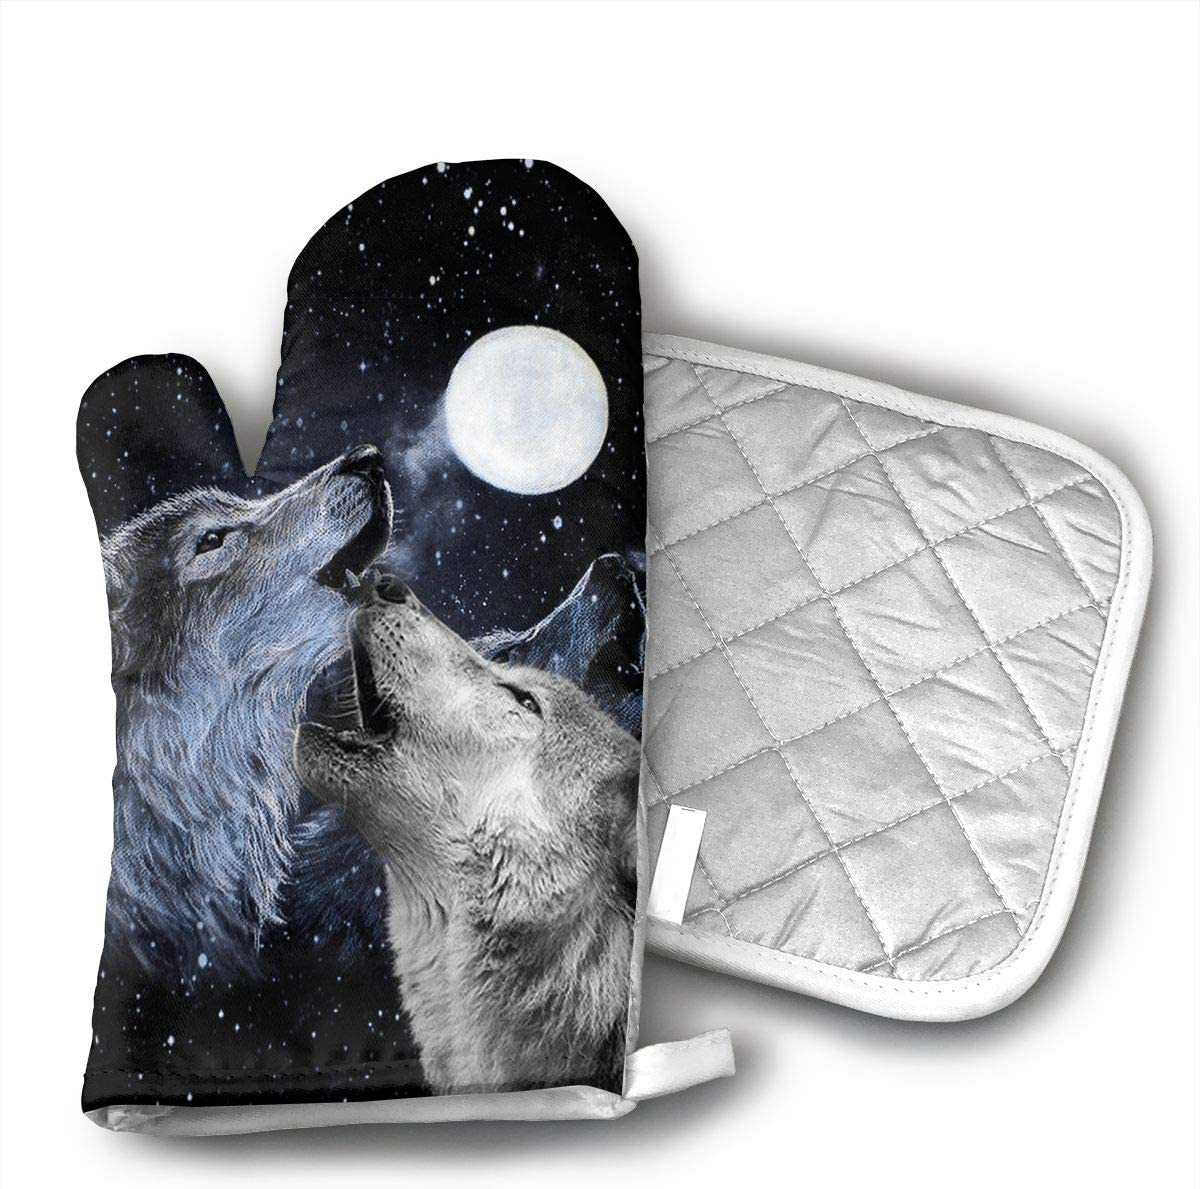 HEPKL Oven Mitts and Potholders Two Wolf and Moon Non-Slip Grip Heat Resistant Oven Gloves BBQ Cooking Baking Grilling